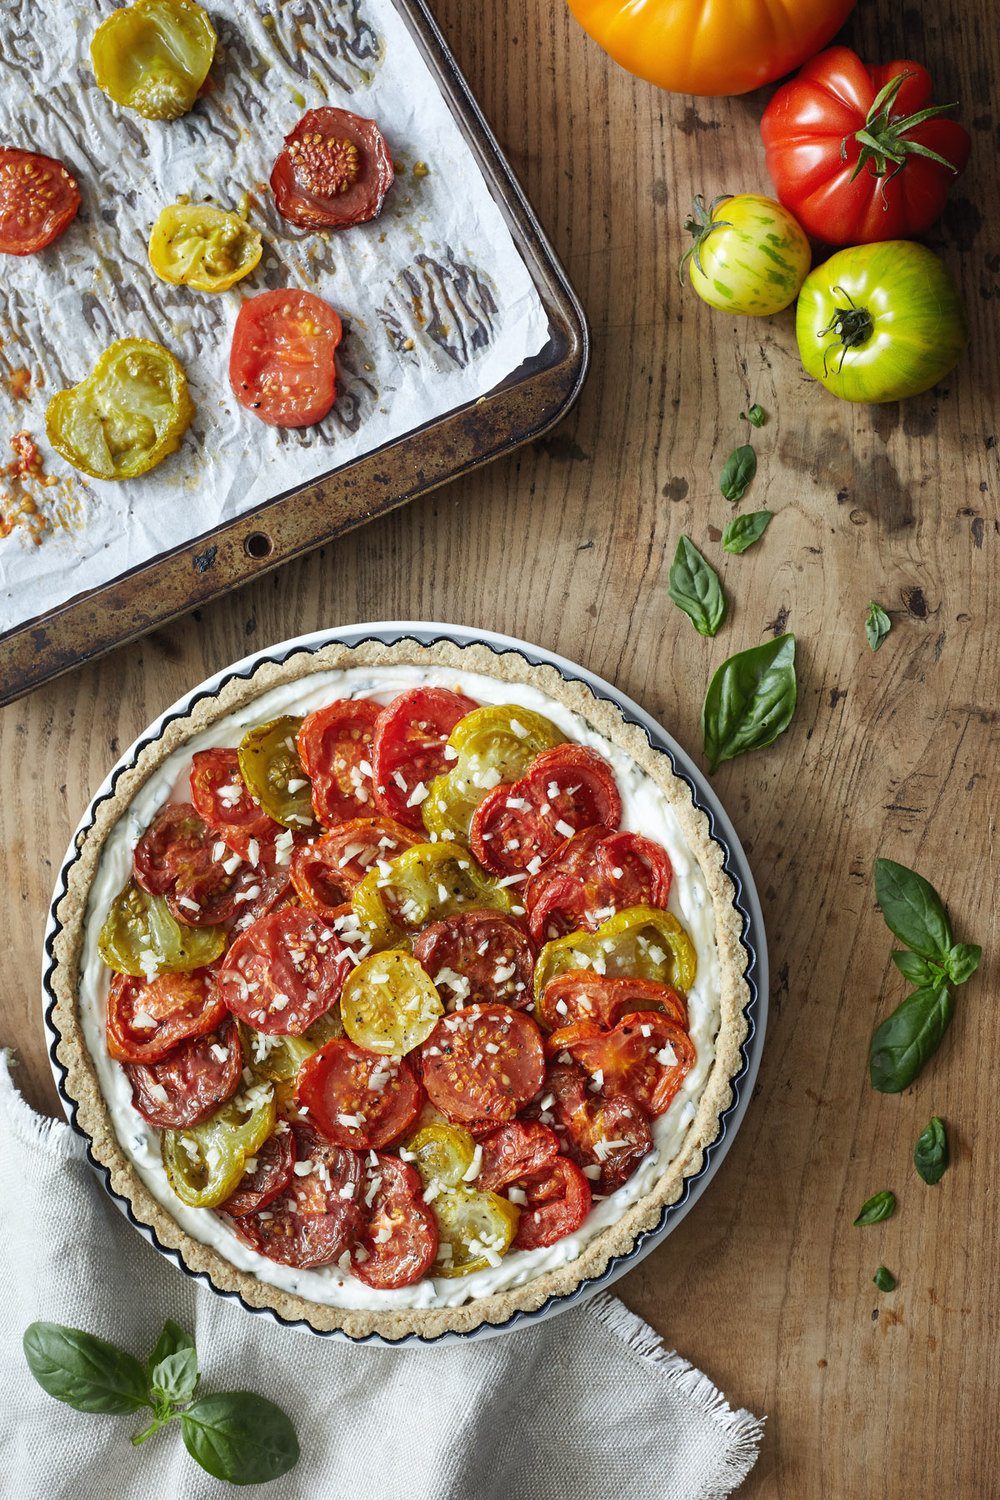 Heirloom Tomato Tart with Gluten Free Crust // Natural Girl Modern World // Vegetarian & Gluten Free